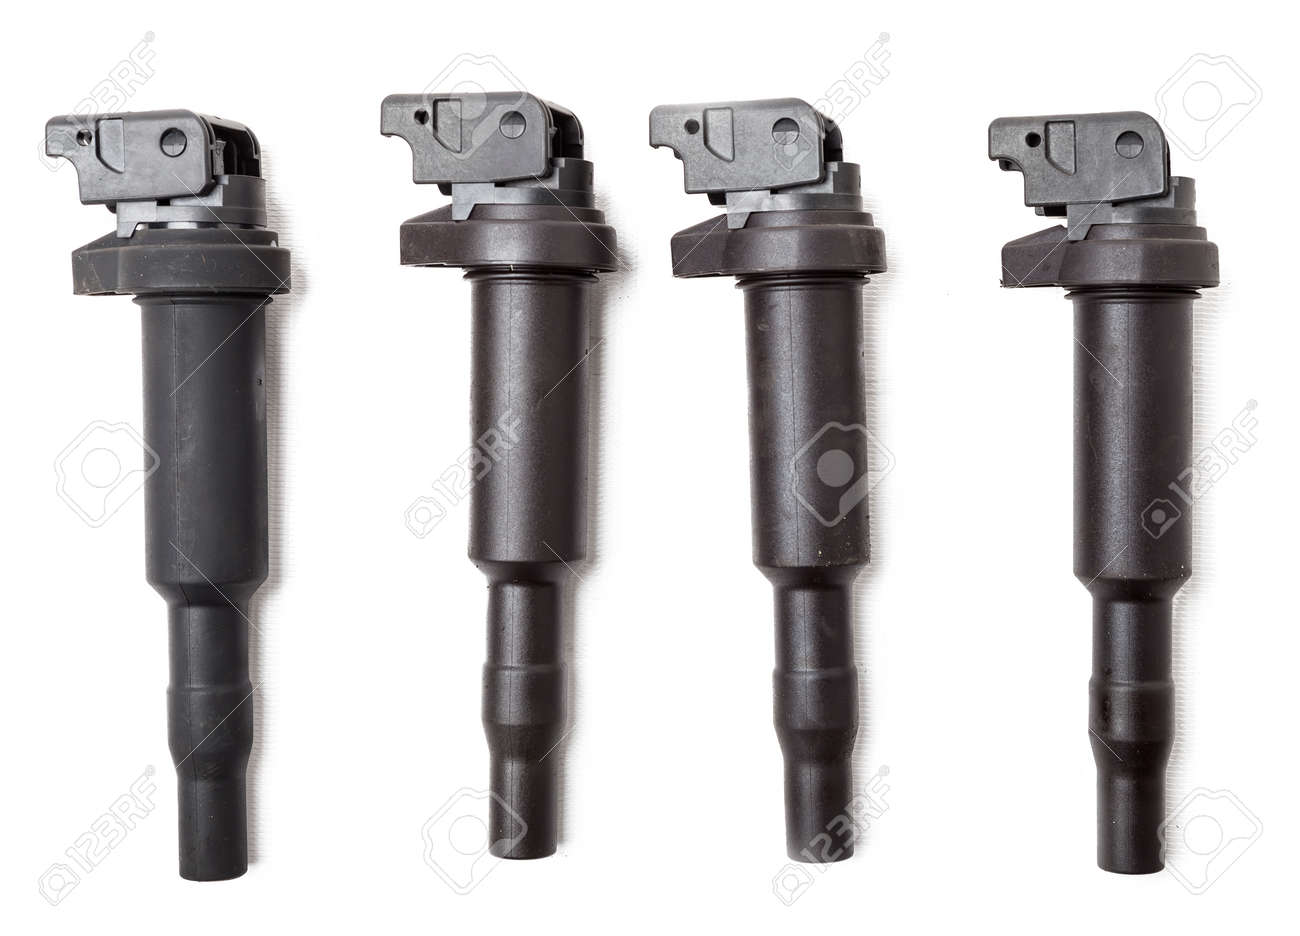 Four ignition coils for an internal combustion engine of a car during repair and service on a white isolated background. Spare parts catalog. - 169051390